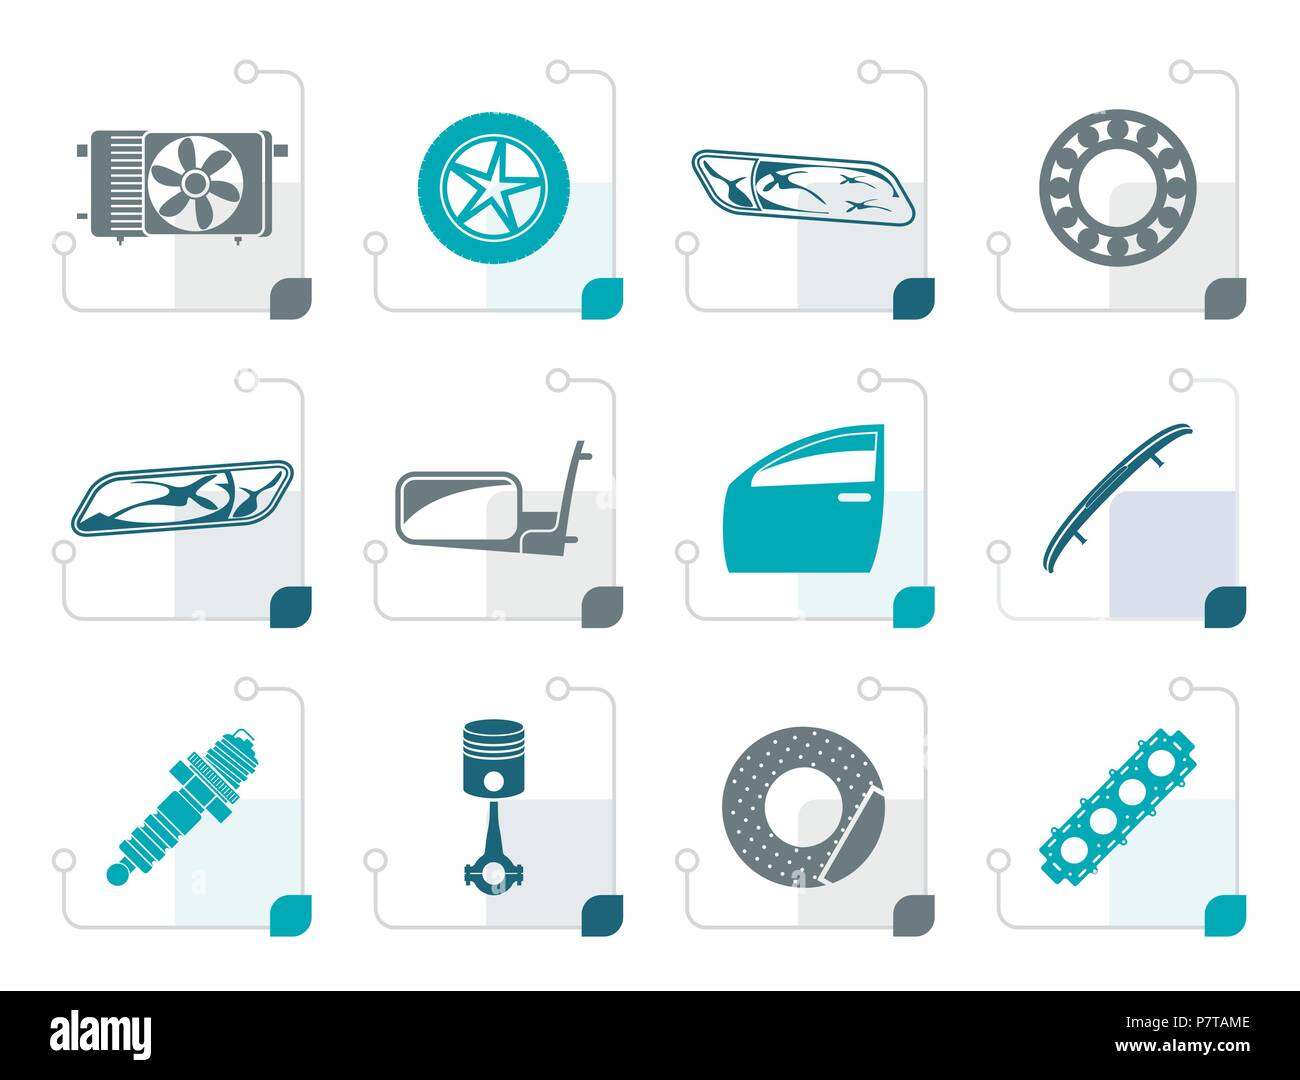 Stylized Realistic Car Parts and Services icons - Vector Icon Set 1 - Stock Vector